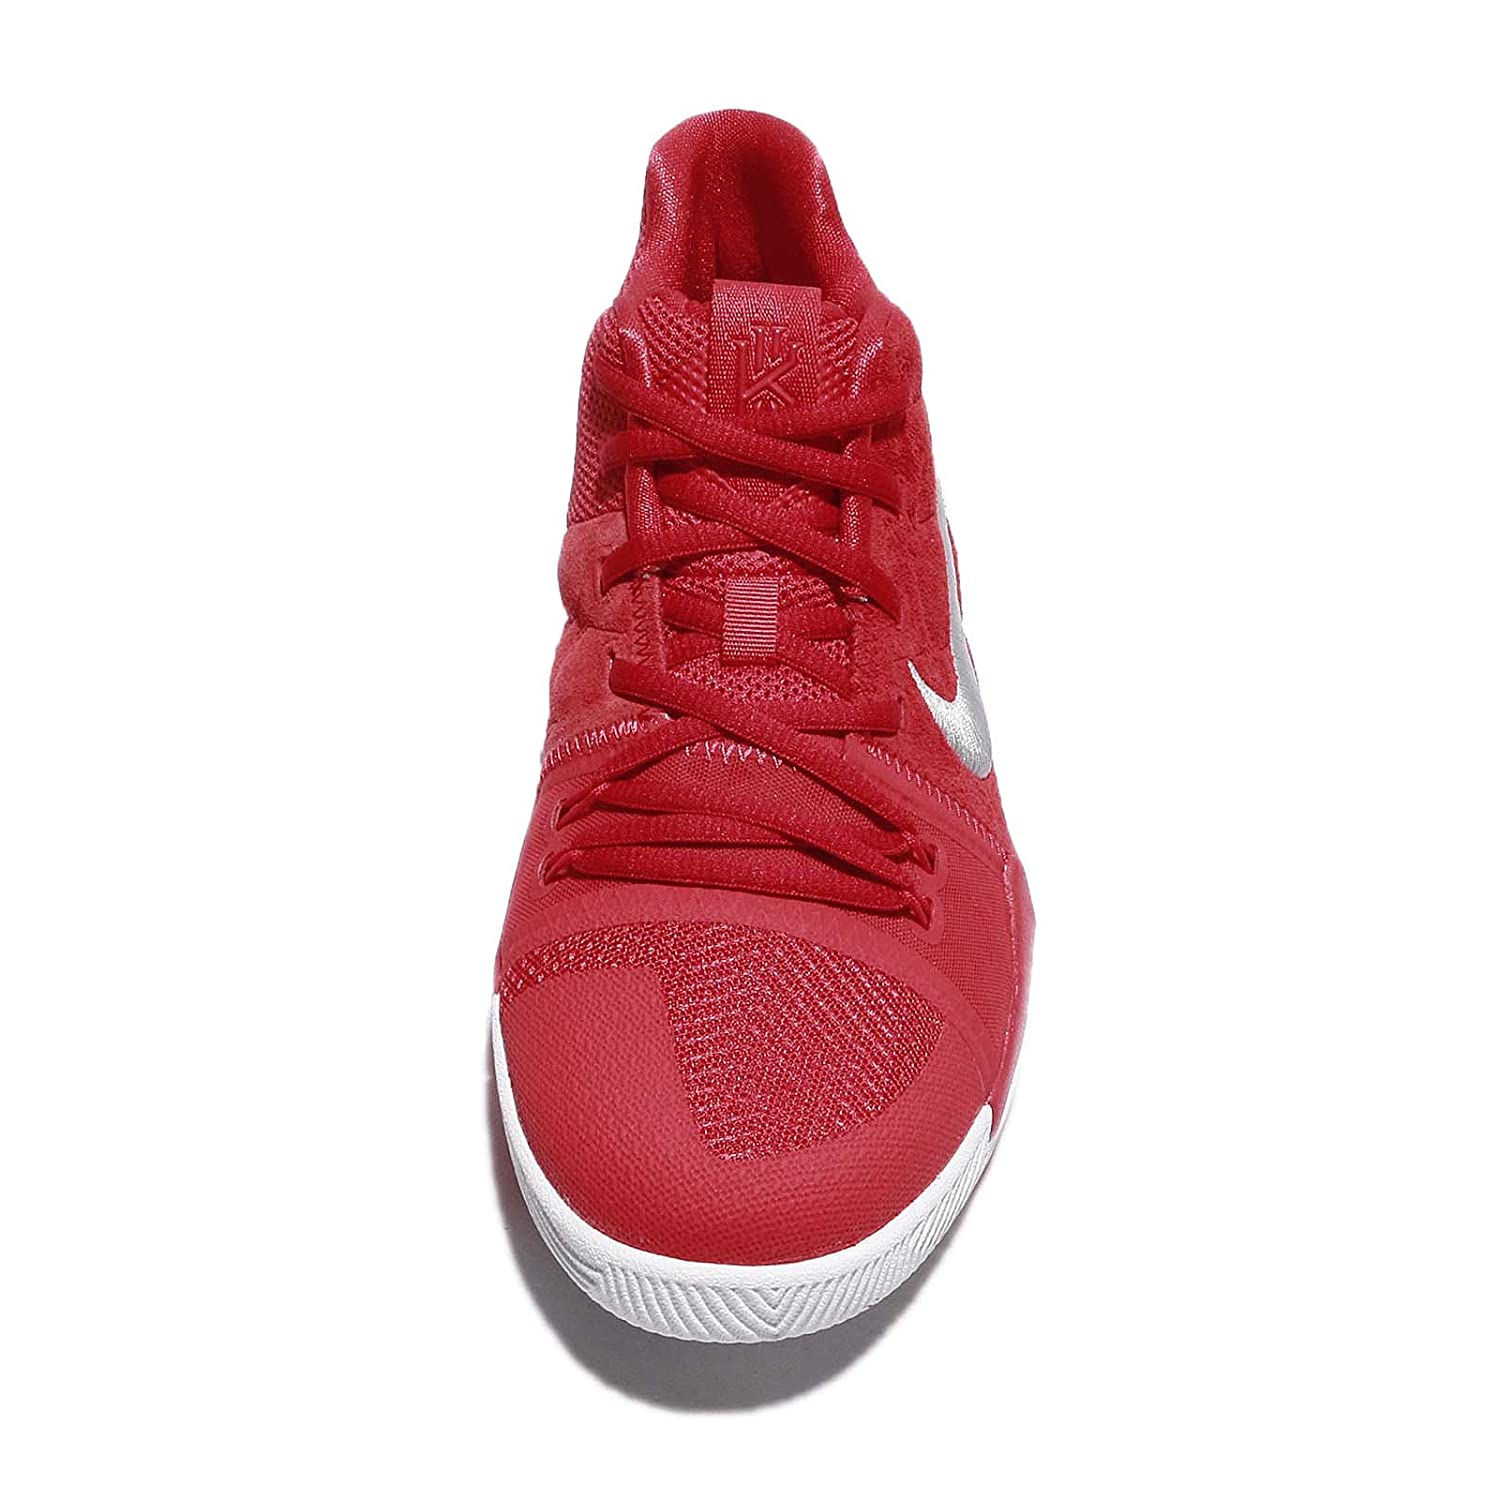 Gentleman/Lady UNIVERSITY Nike Kid's Kyrie 3 GS, UNIVERSITY Gentleman/Lady RED/UNIVERSITY RED-WOLF GREY Beautiful color Fast delivery German Outlets VR13296 5ddb9e